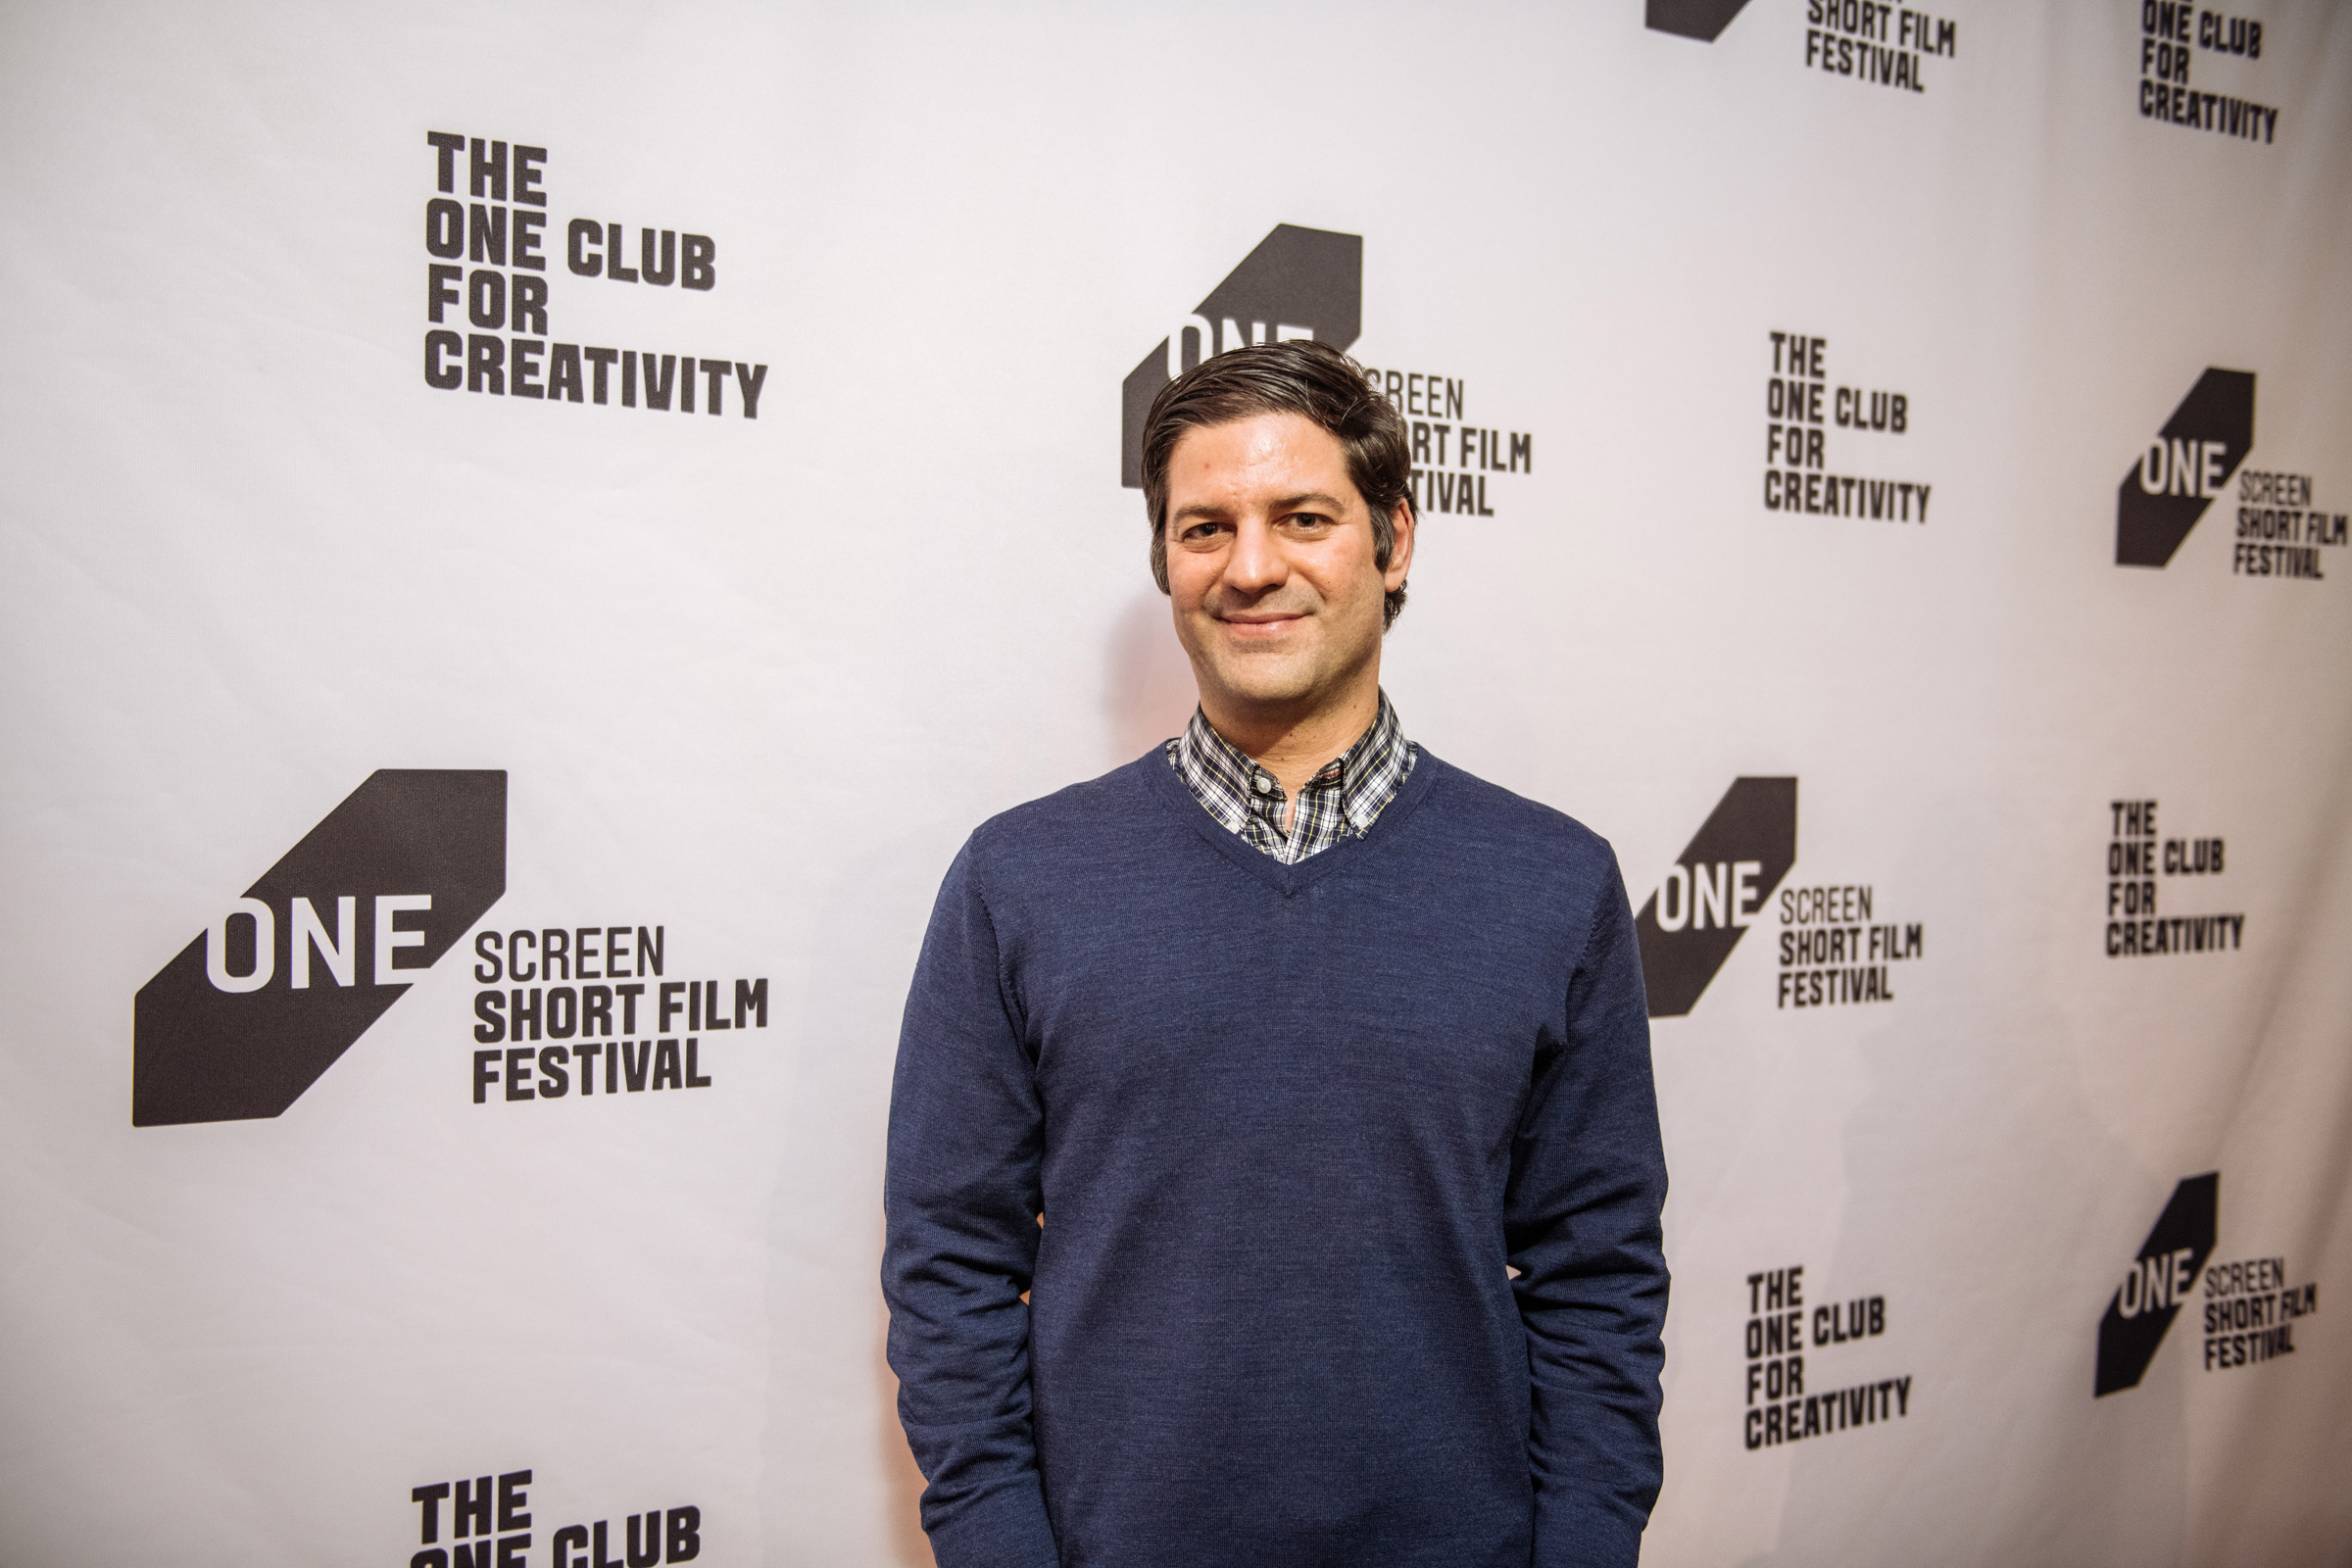 2019 One Screen Short Film Festival